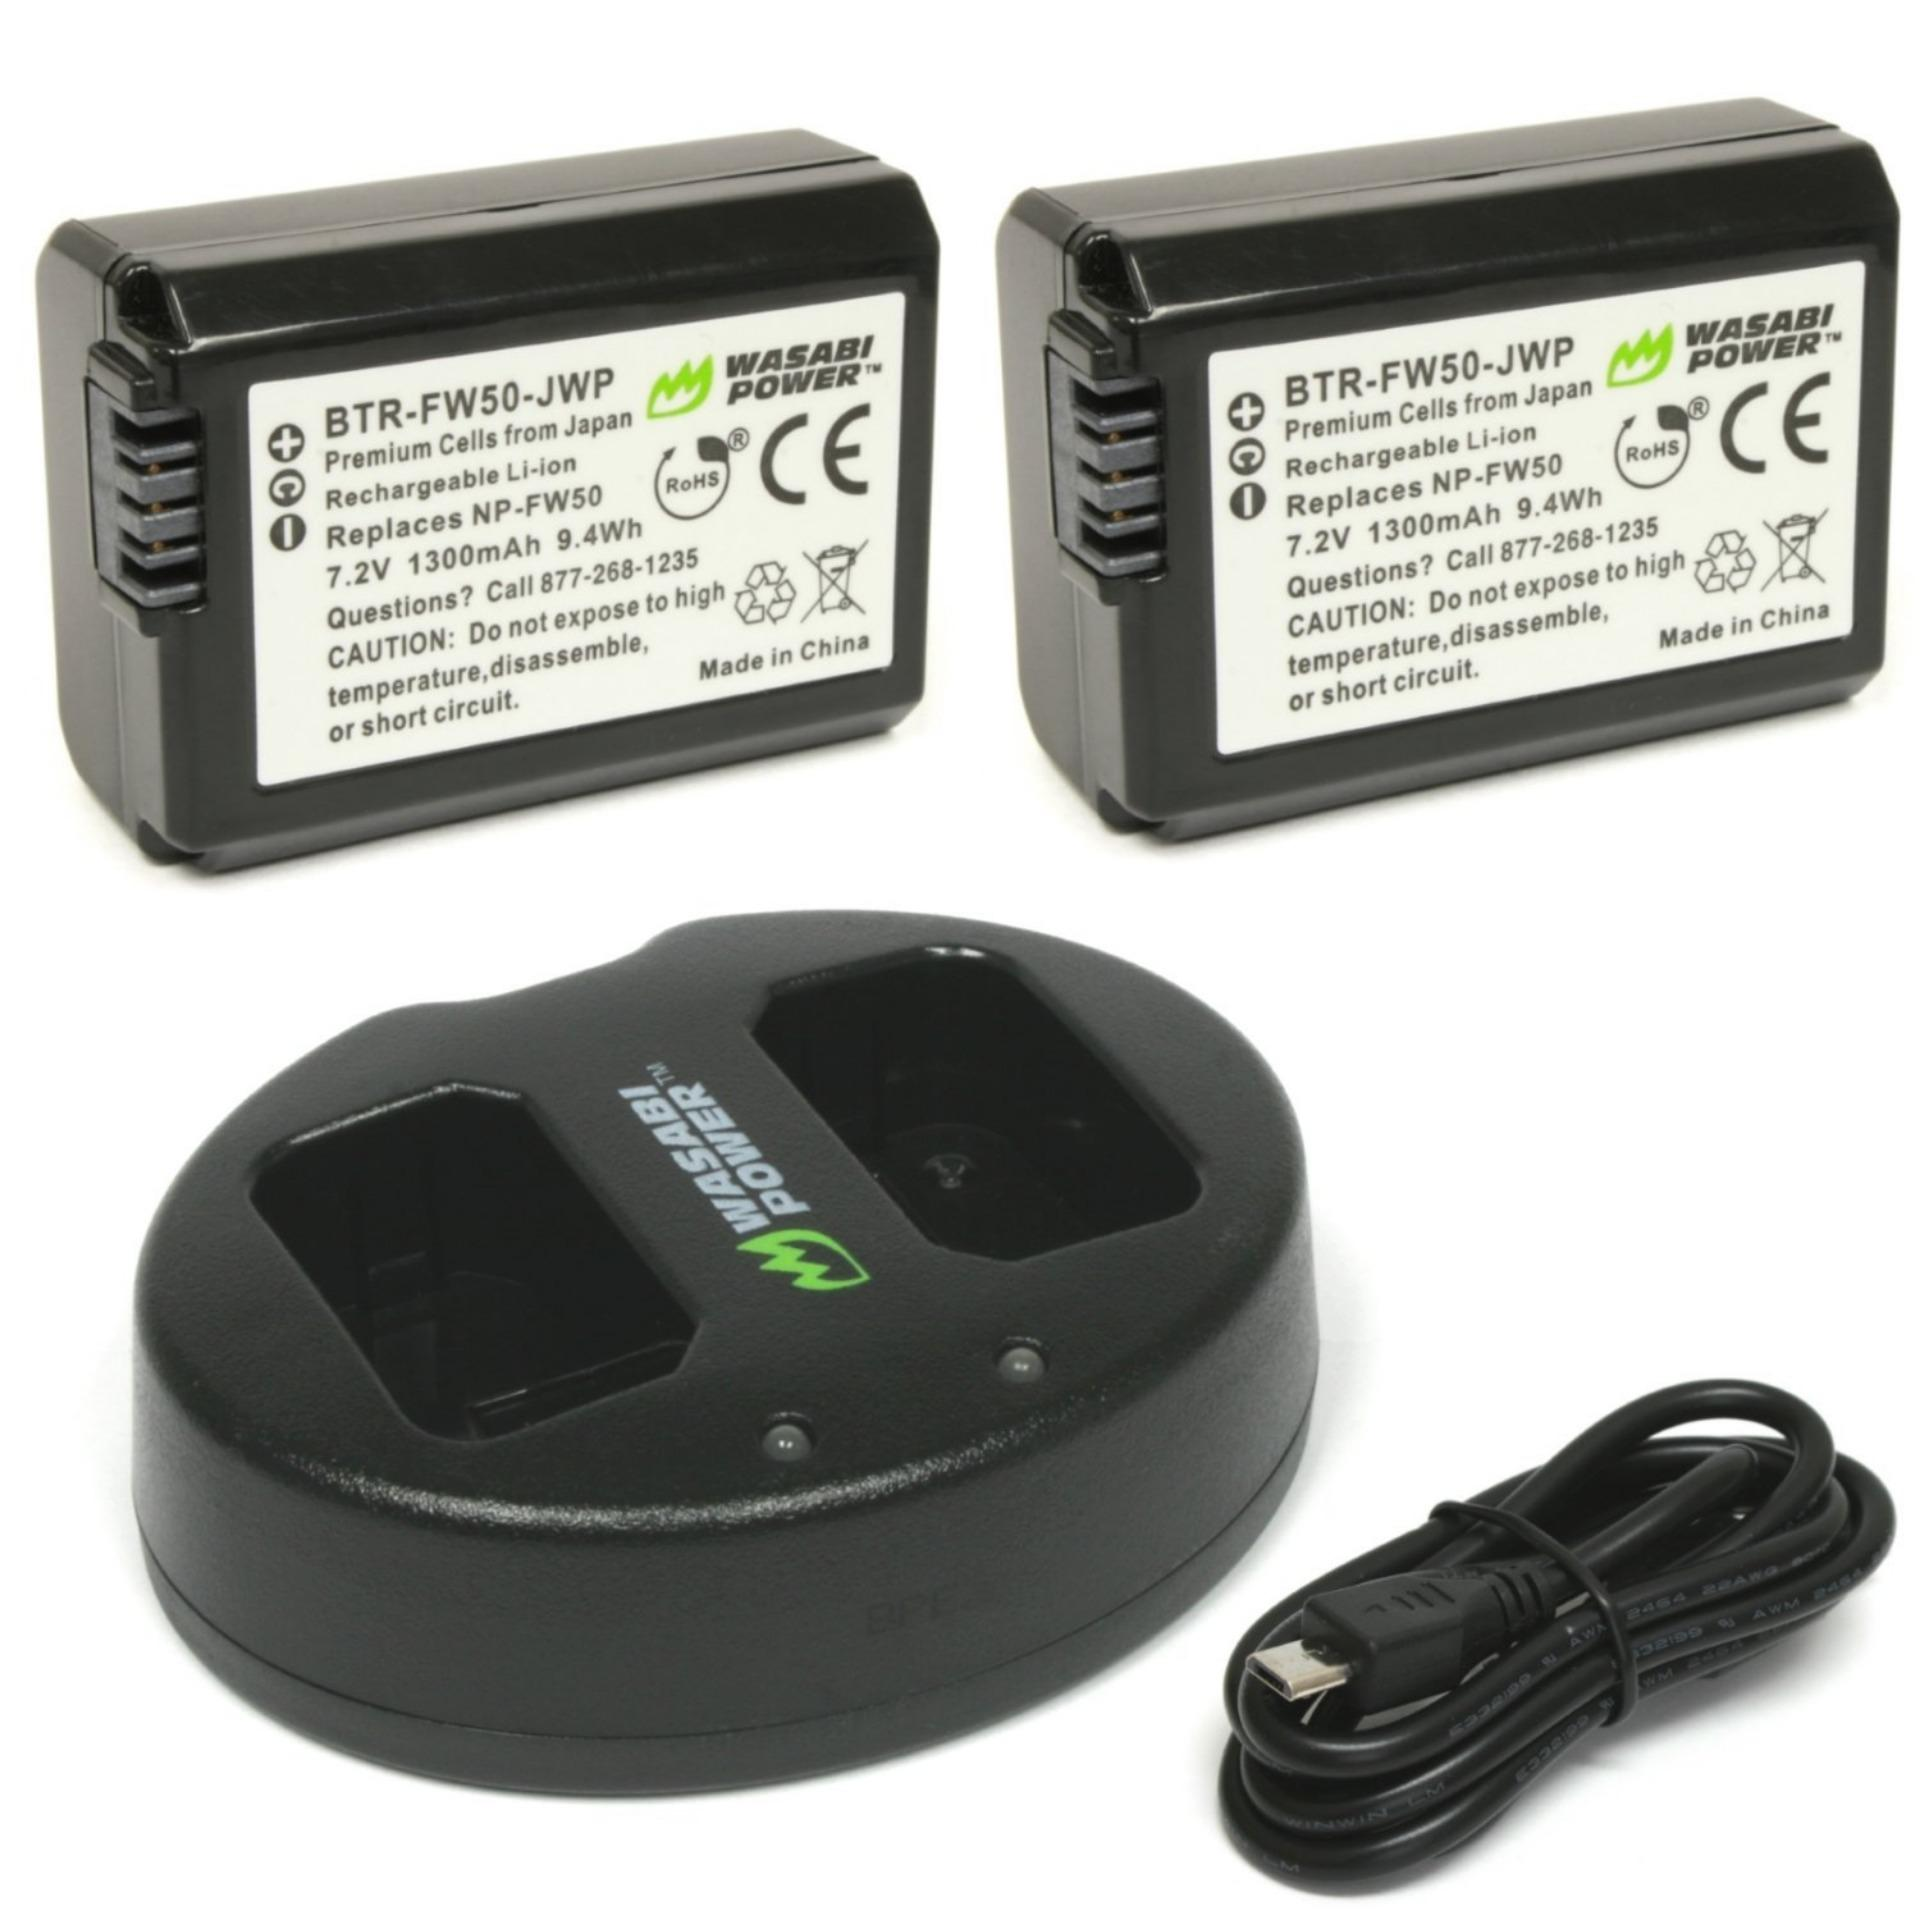 Spesifikasi Wasabi Power Battery 2 Pack And Dual Usb Charger For Sony Np Fw50 Terbaik